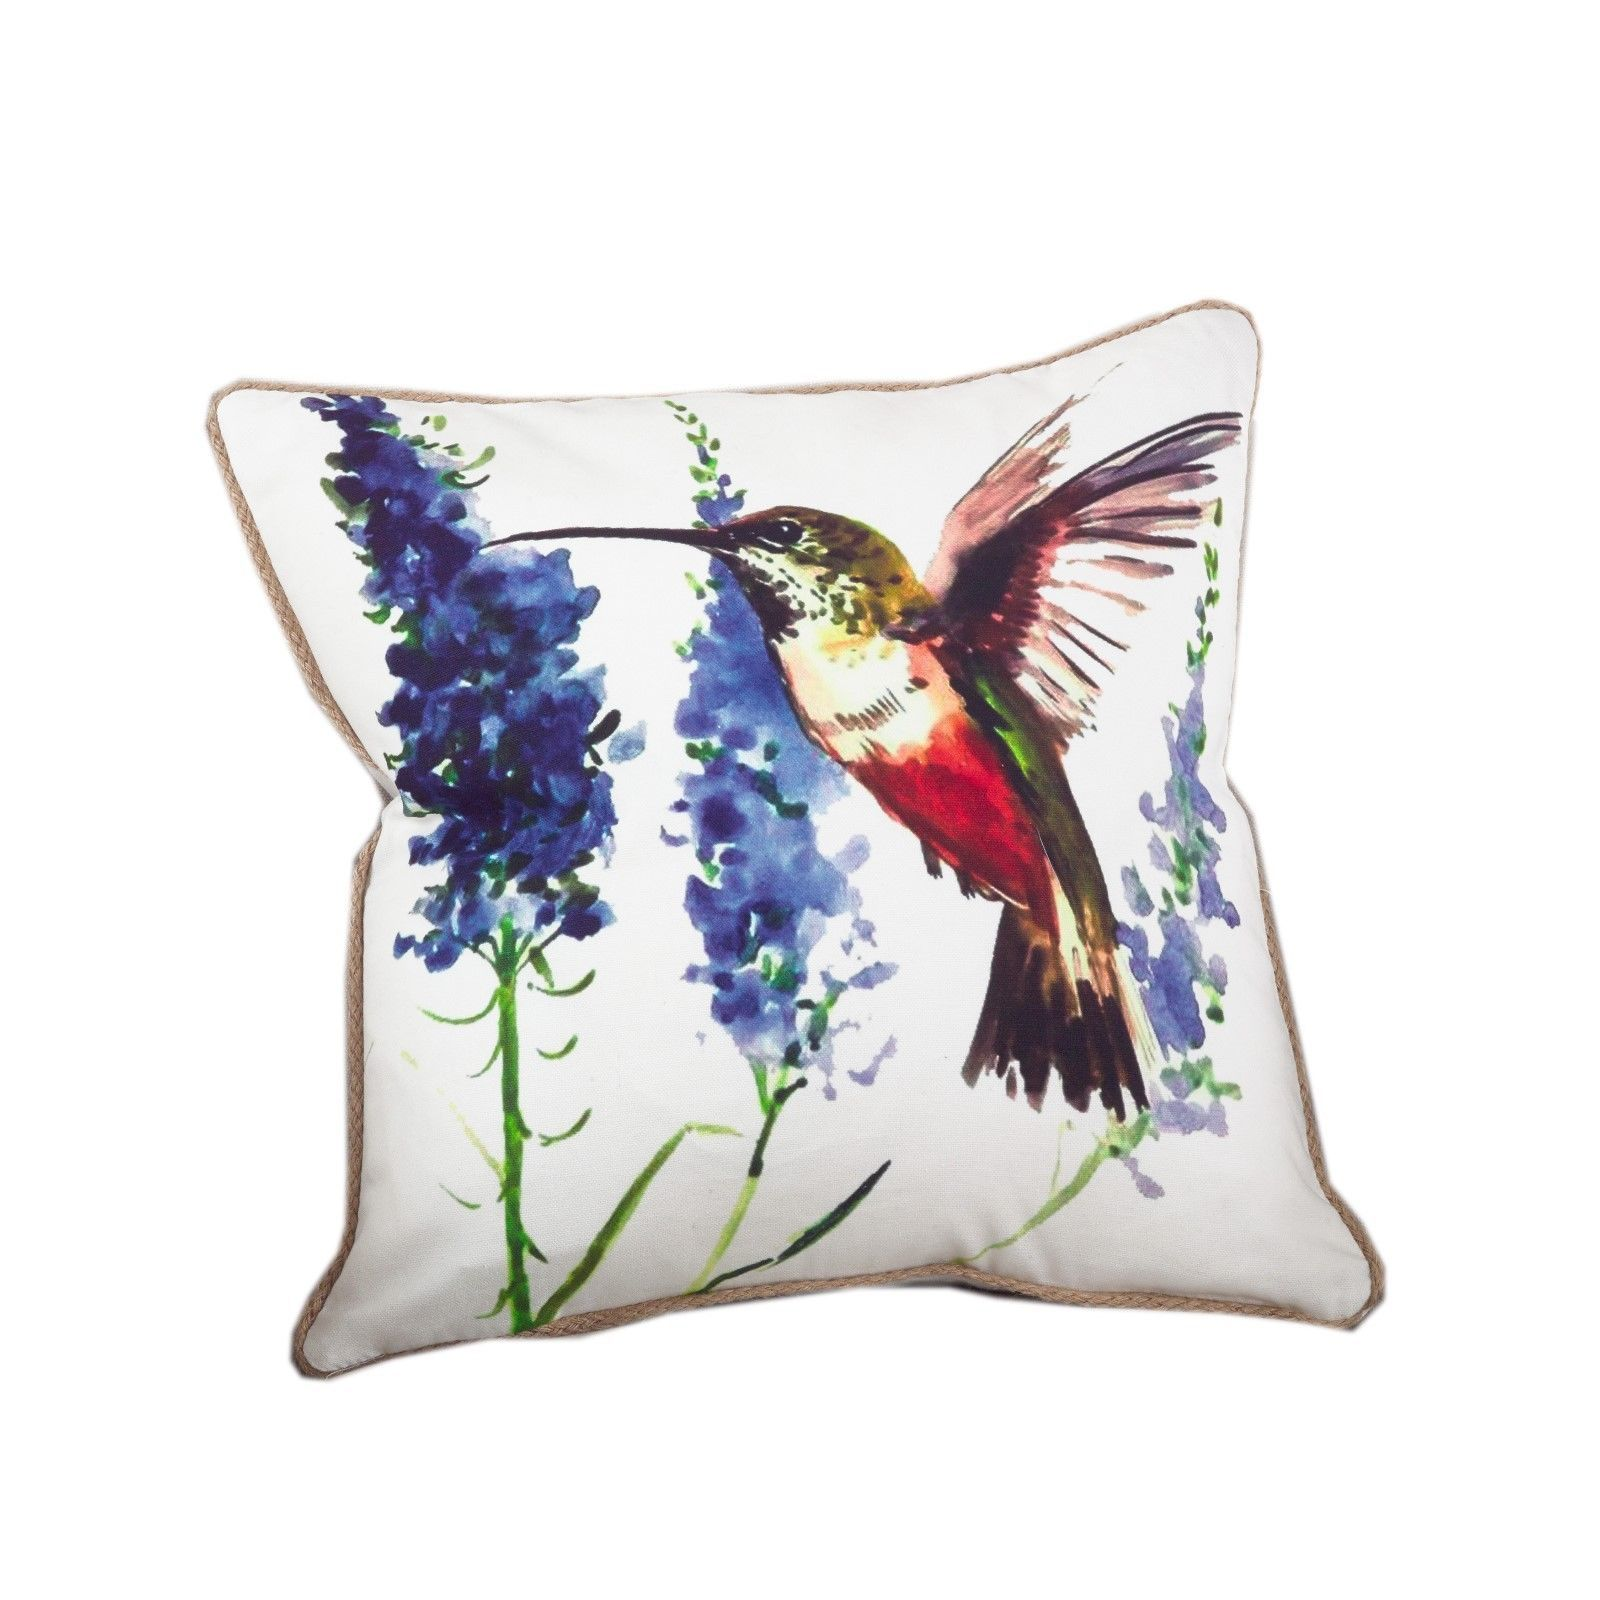 Throw Pillows Down Filled : Fennco Styles 18-inch Humming Bird Down Filled Throw Pillow - 100% Cotton - Pillows